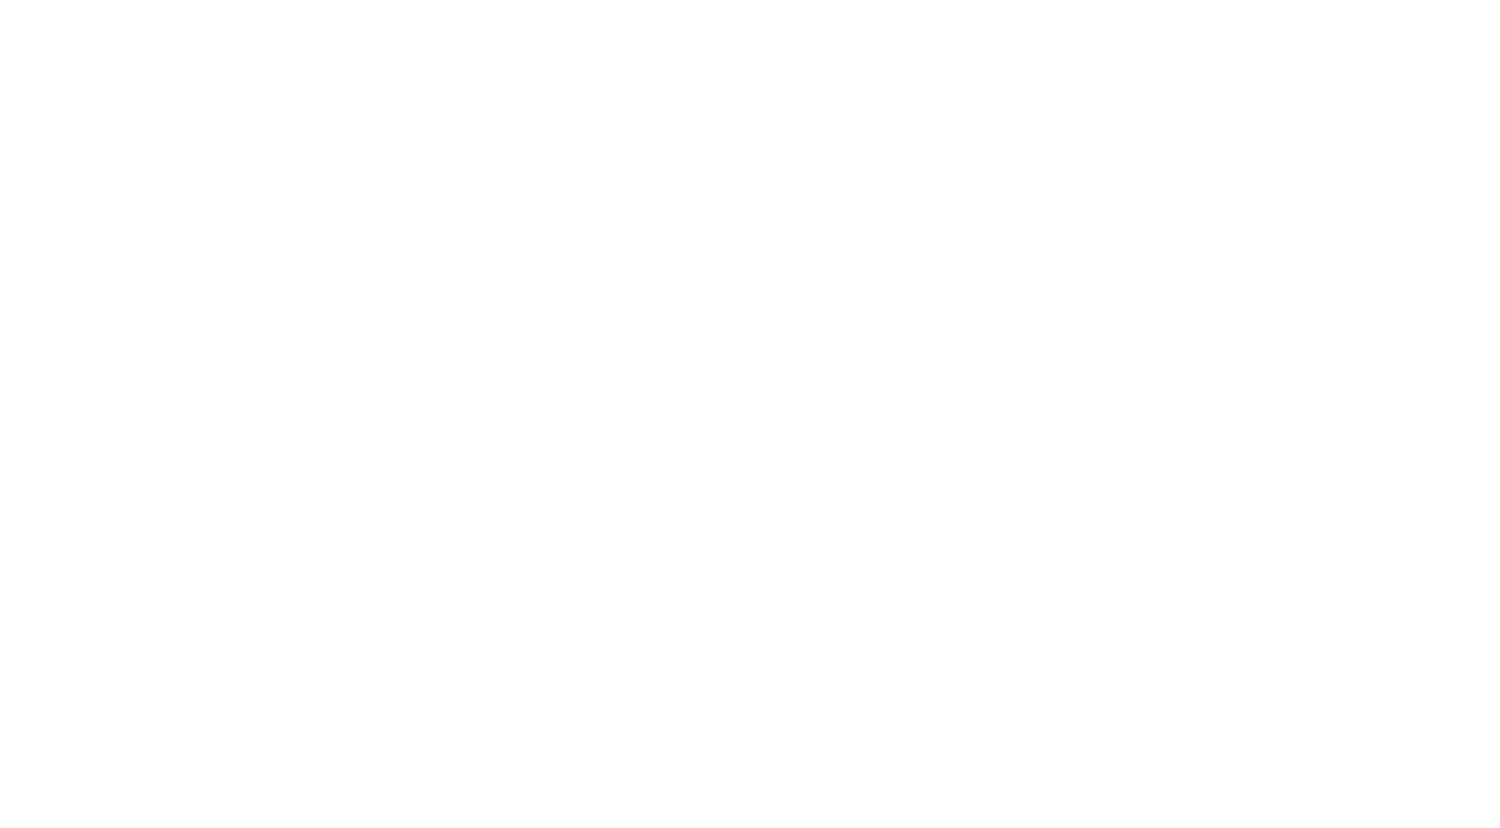 GibCo Wind Safety & Rights